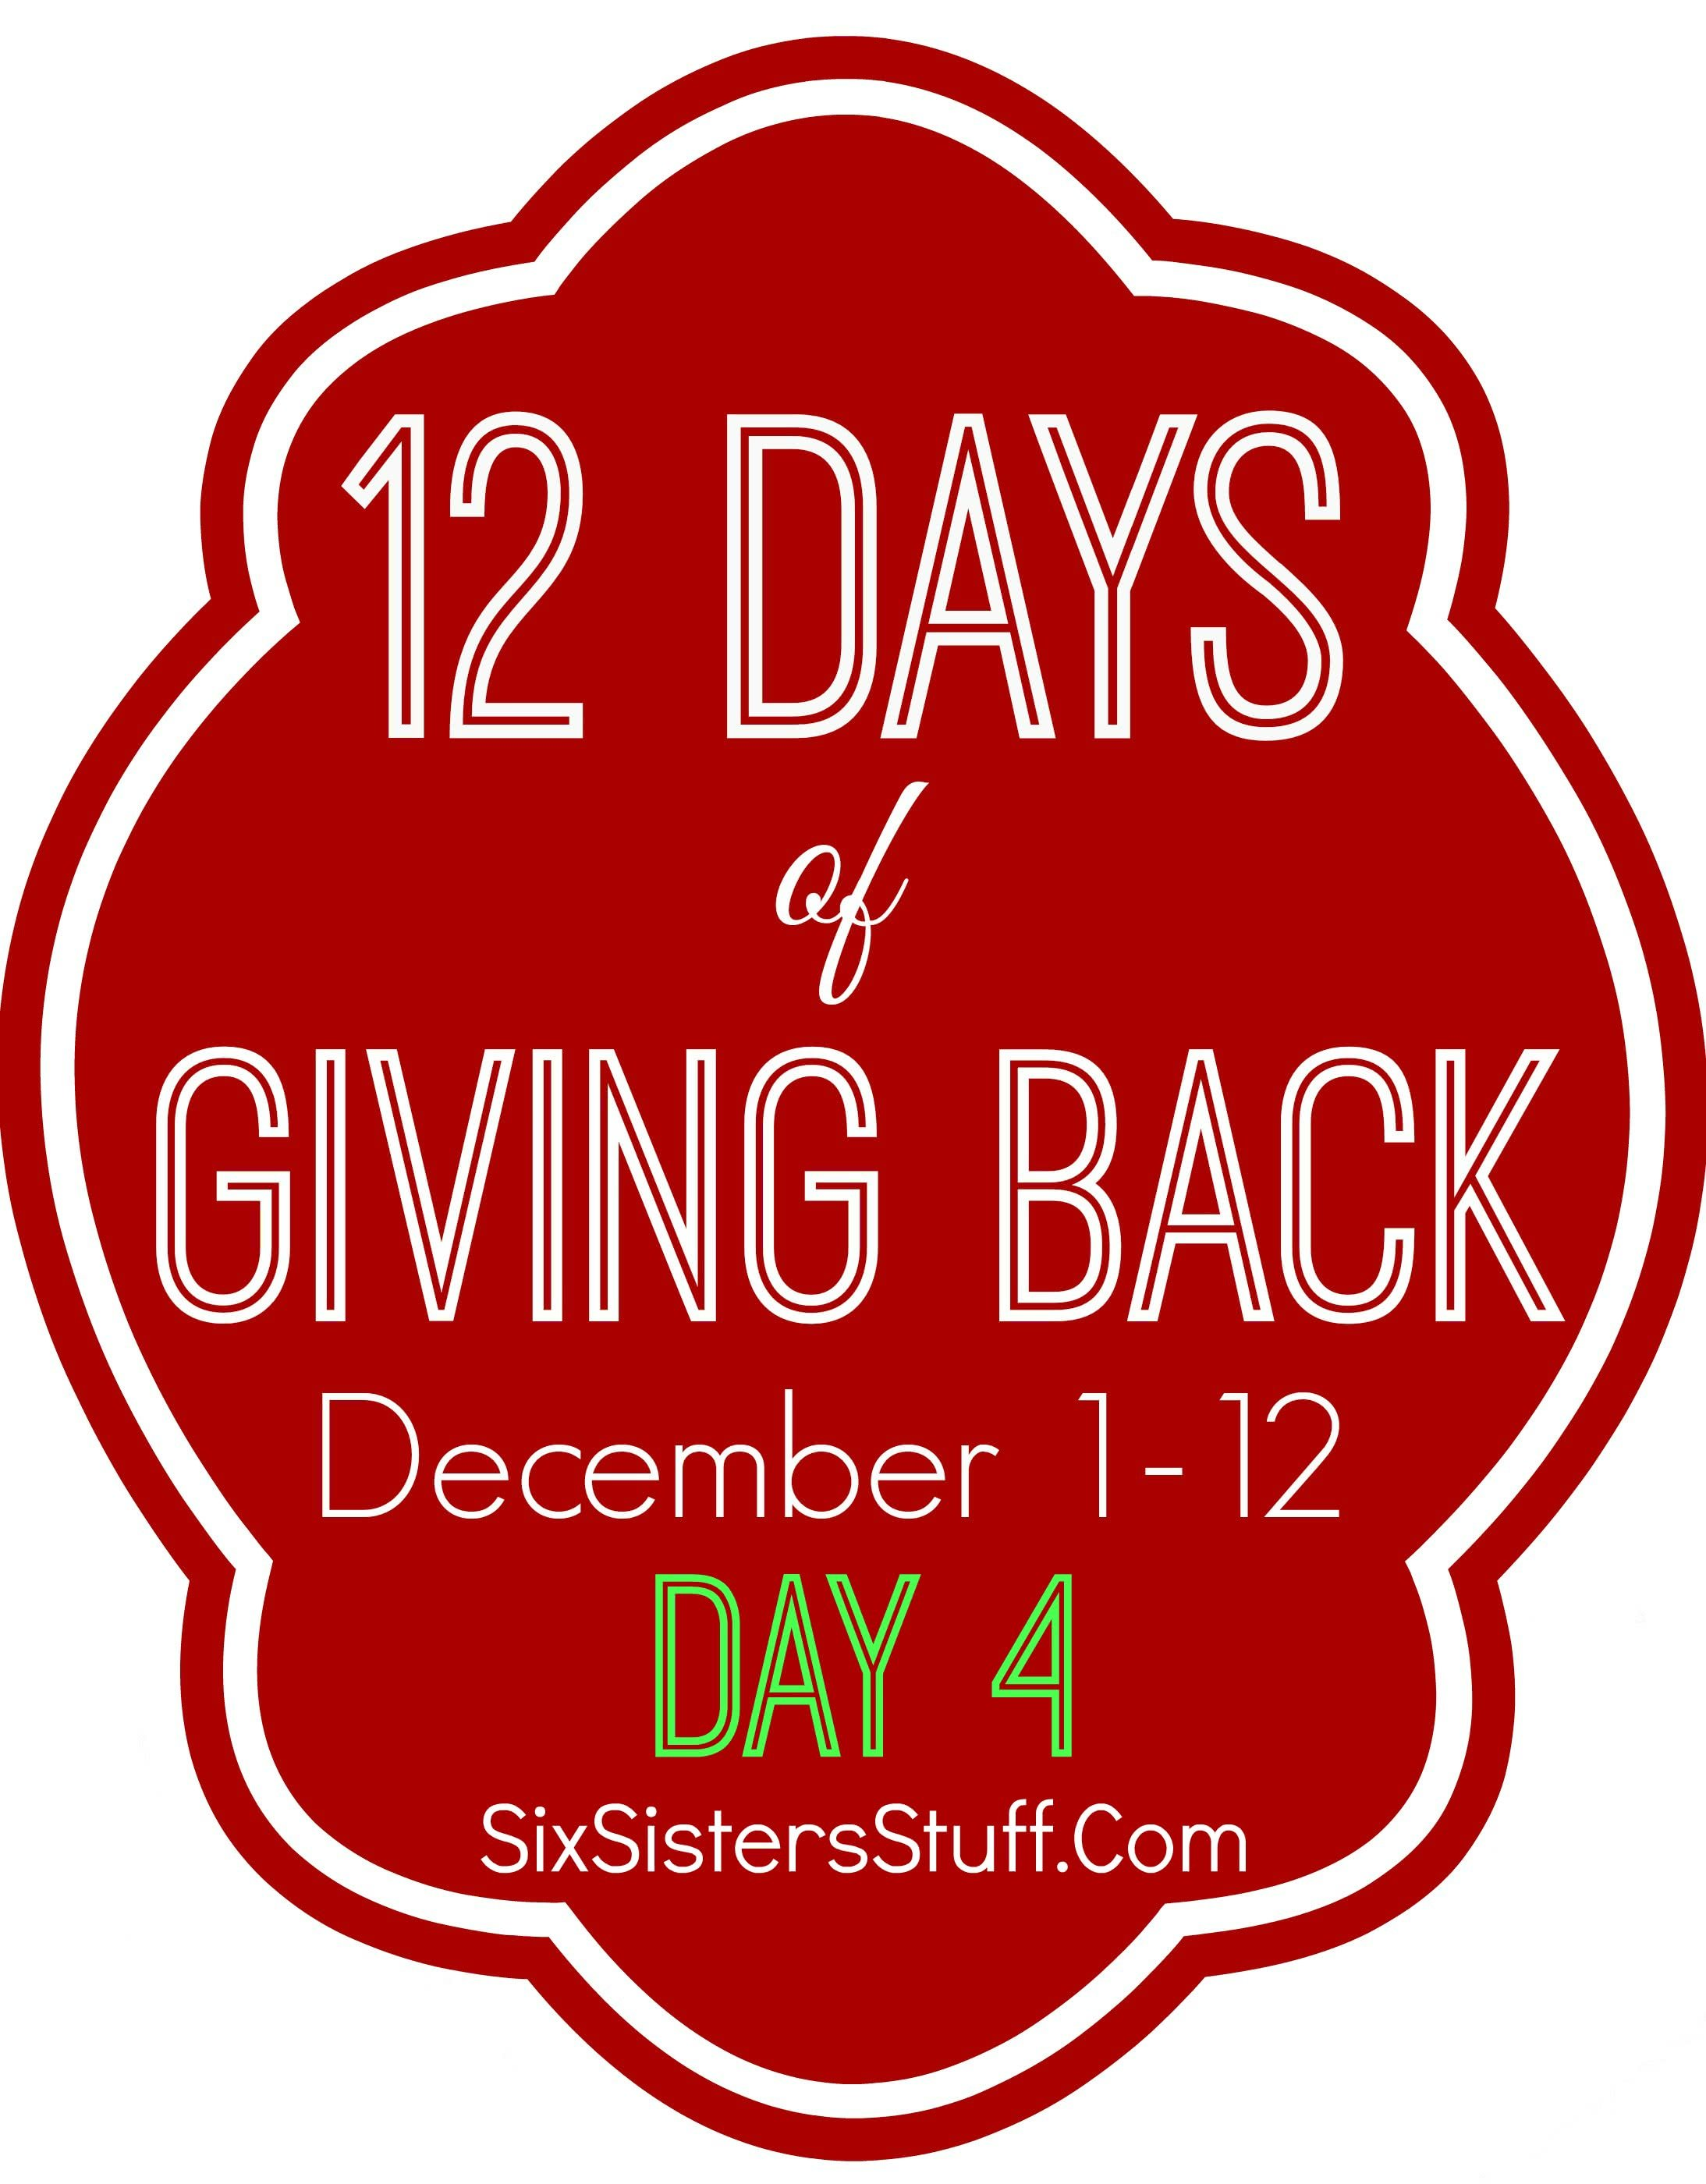 12 days of giving back 4